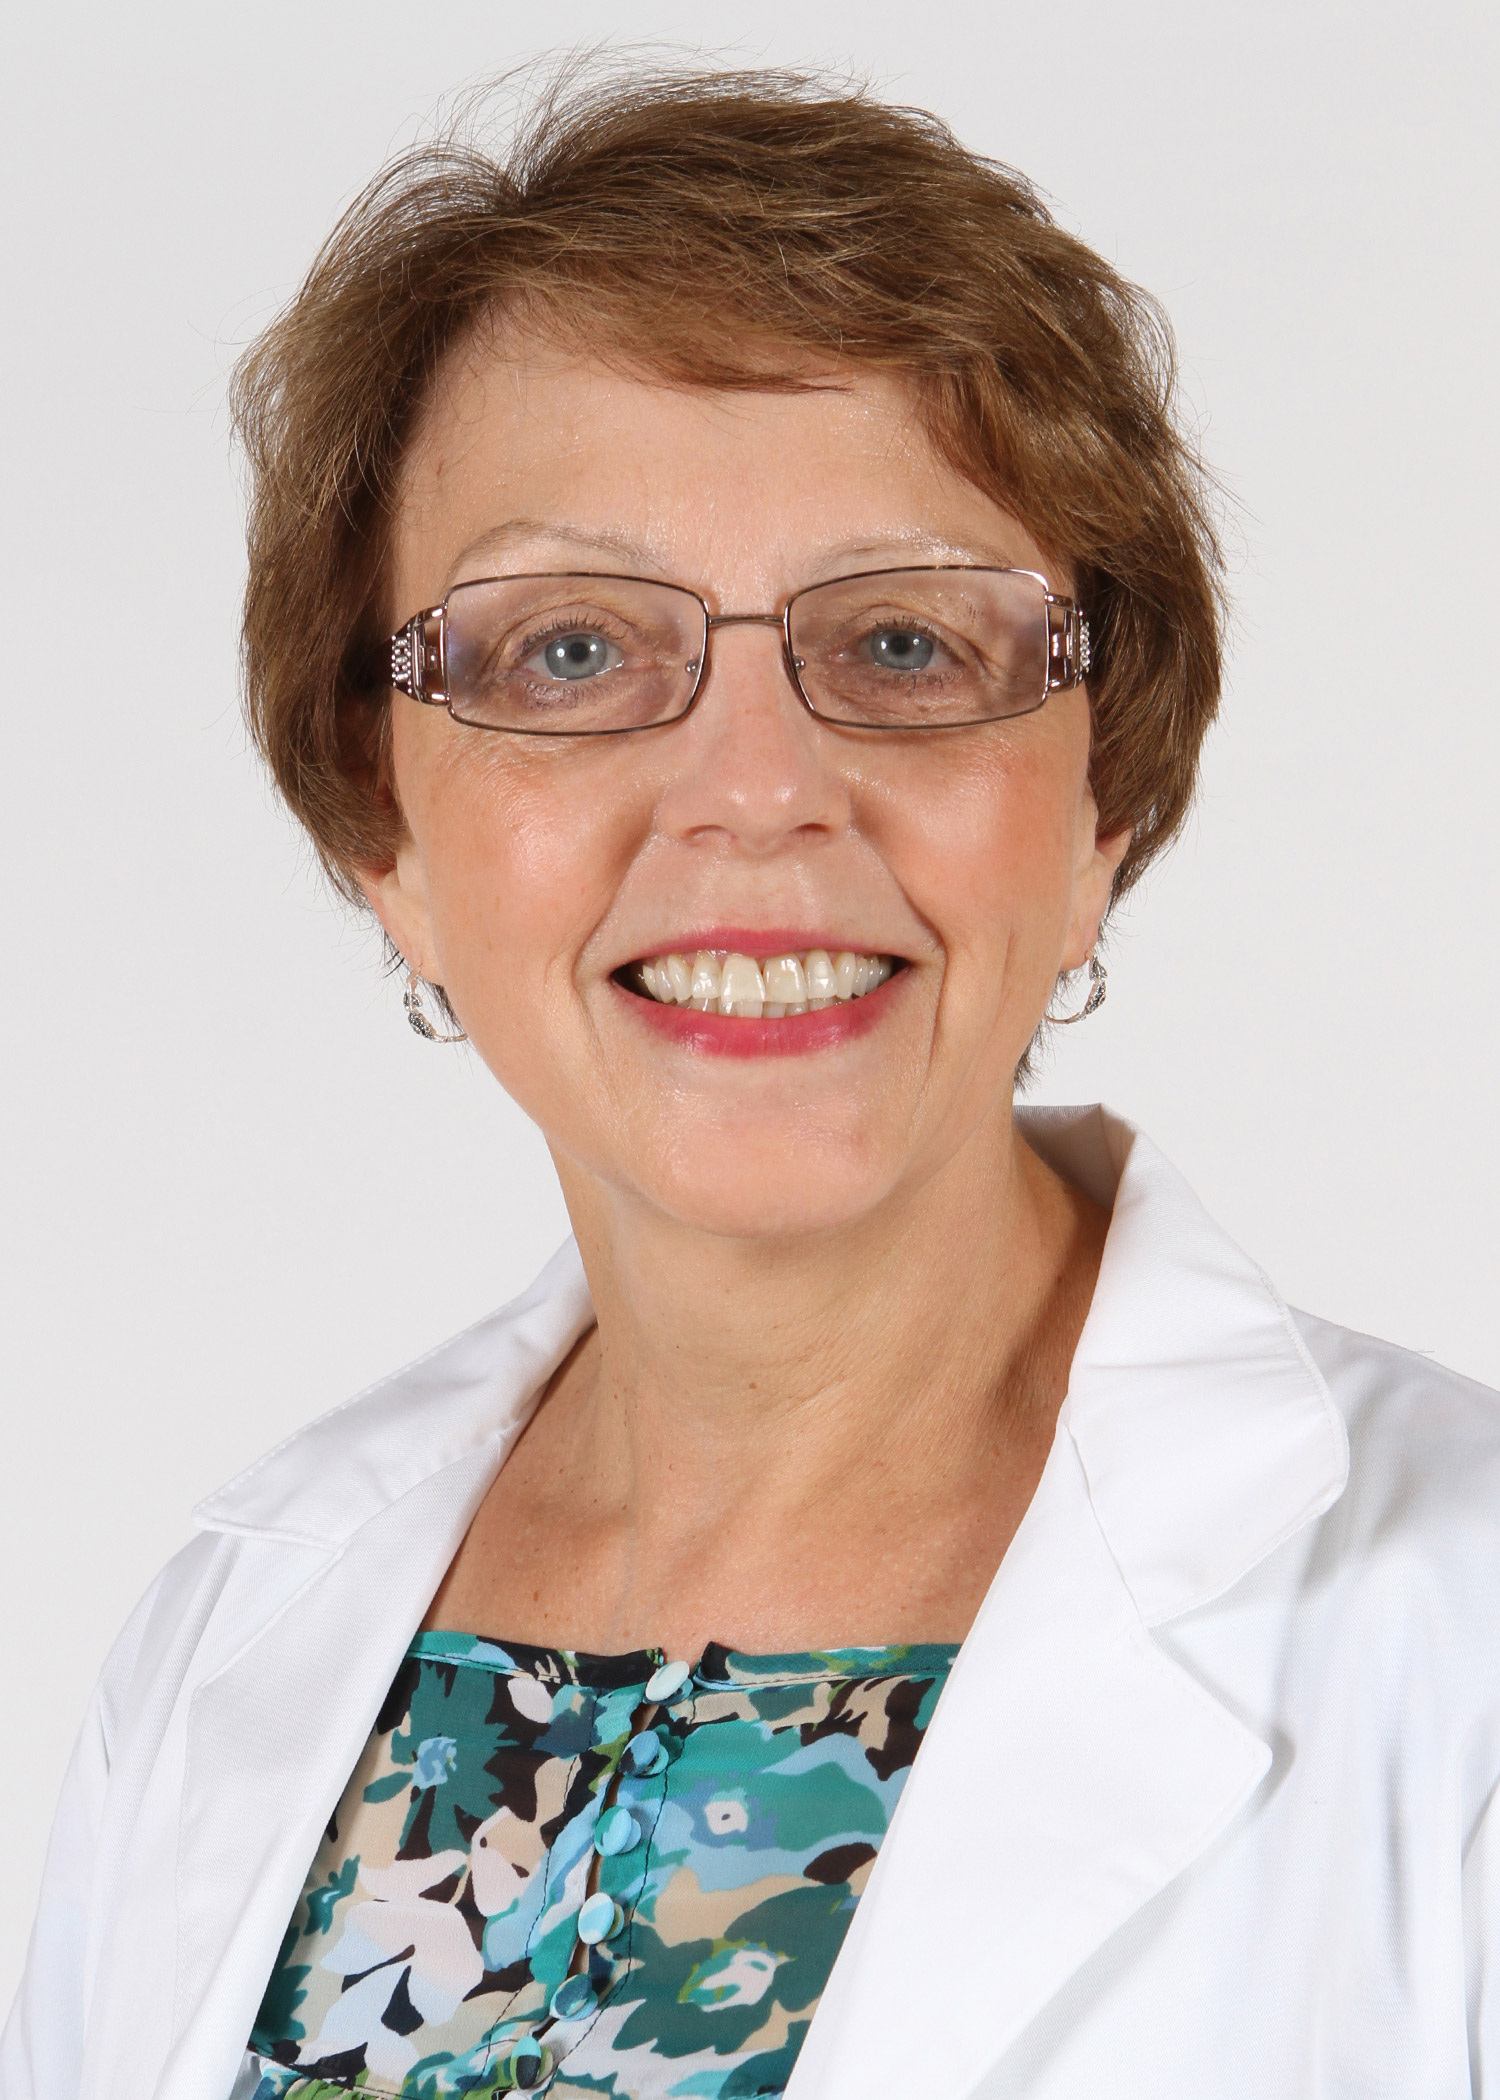 Dr. Ann Meyer, DO